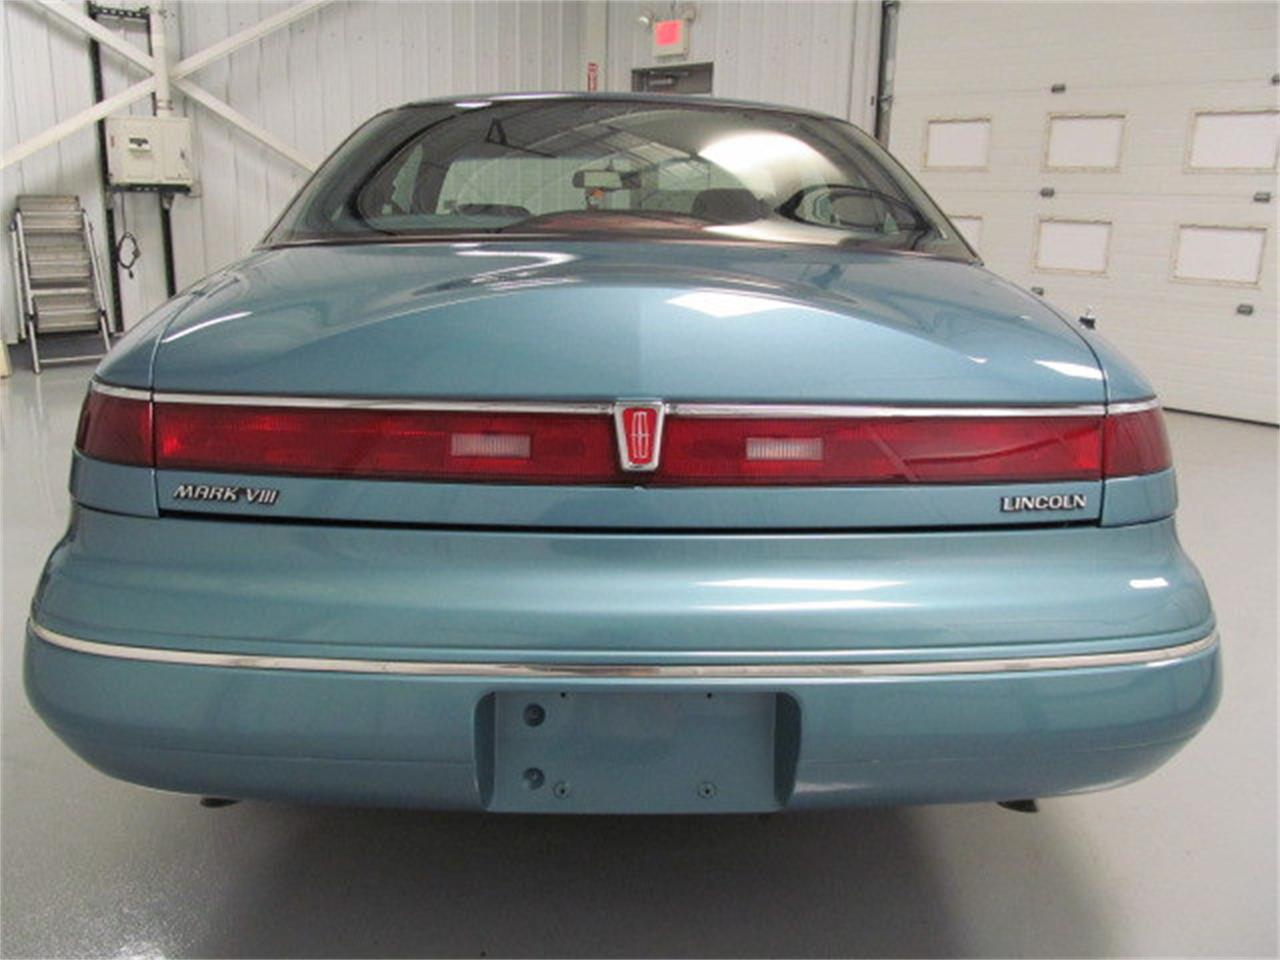 Large Picture of '93 Lincoln Mark VIII located in Virginia Offered by Duncan Imports & Classic Cars - JL9Z